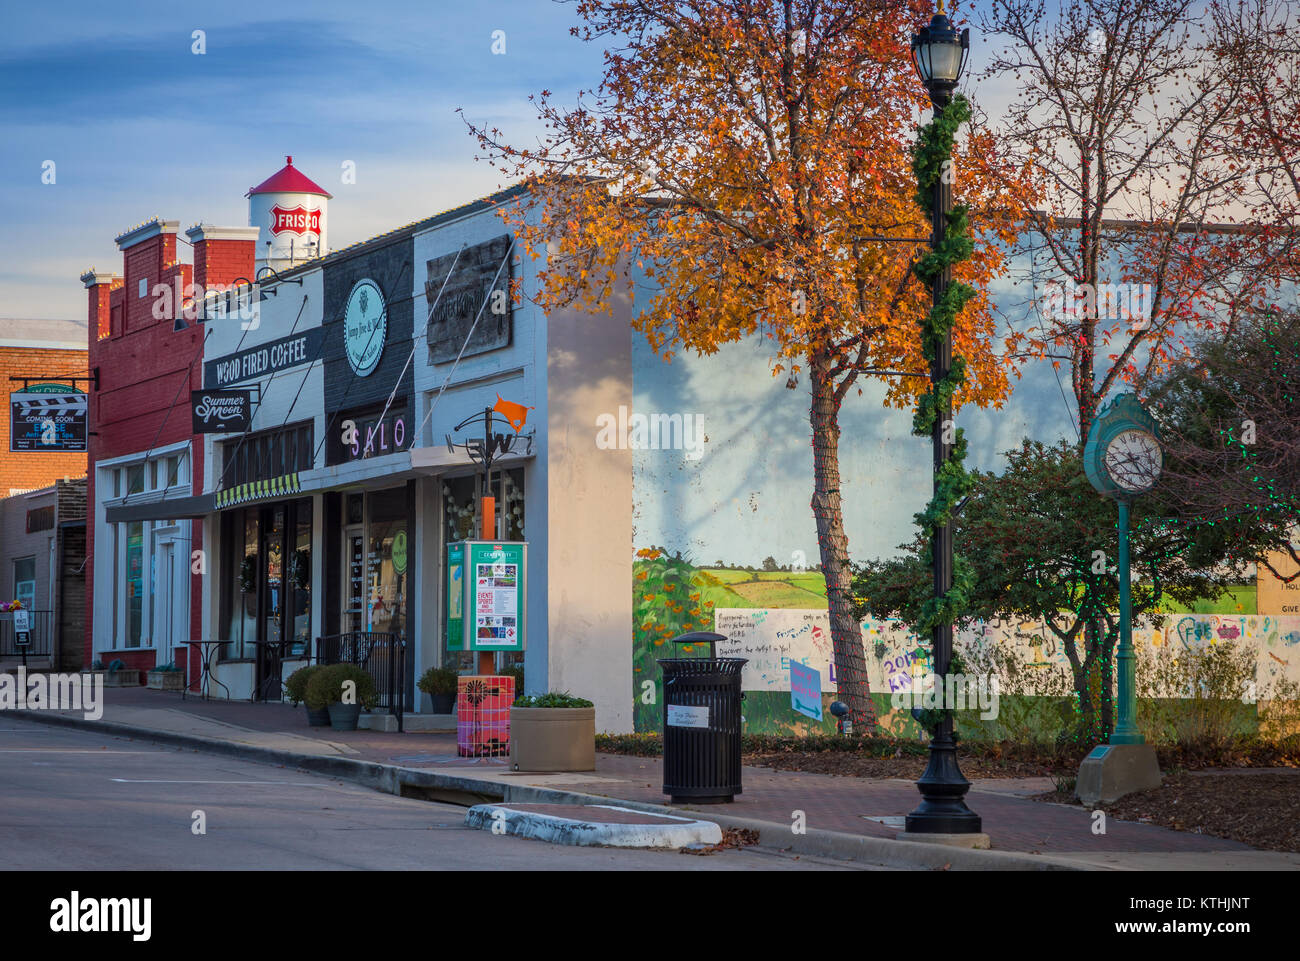 Main Street in Frisco, Texas. Frisco is a city in Collin and Denton counties in Texas, in the Dallas-Fort Worth - Stock Image